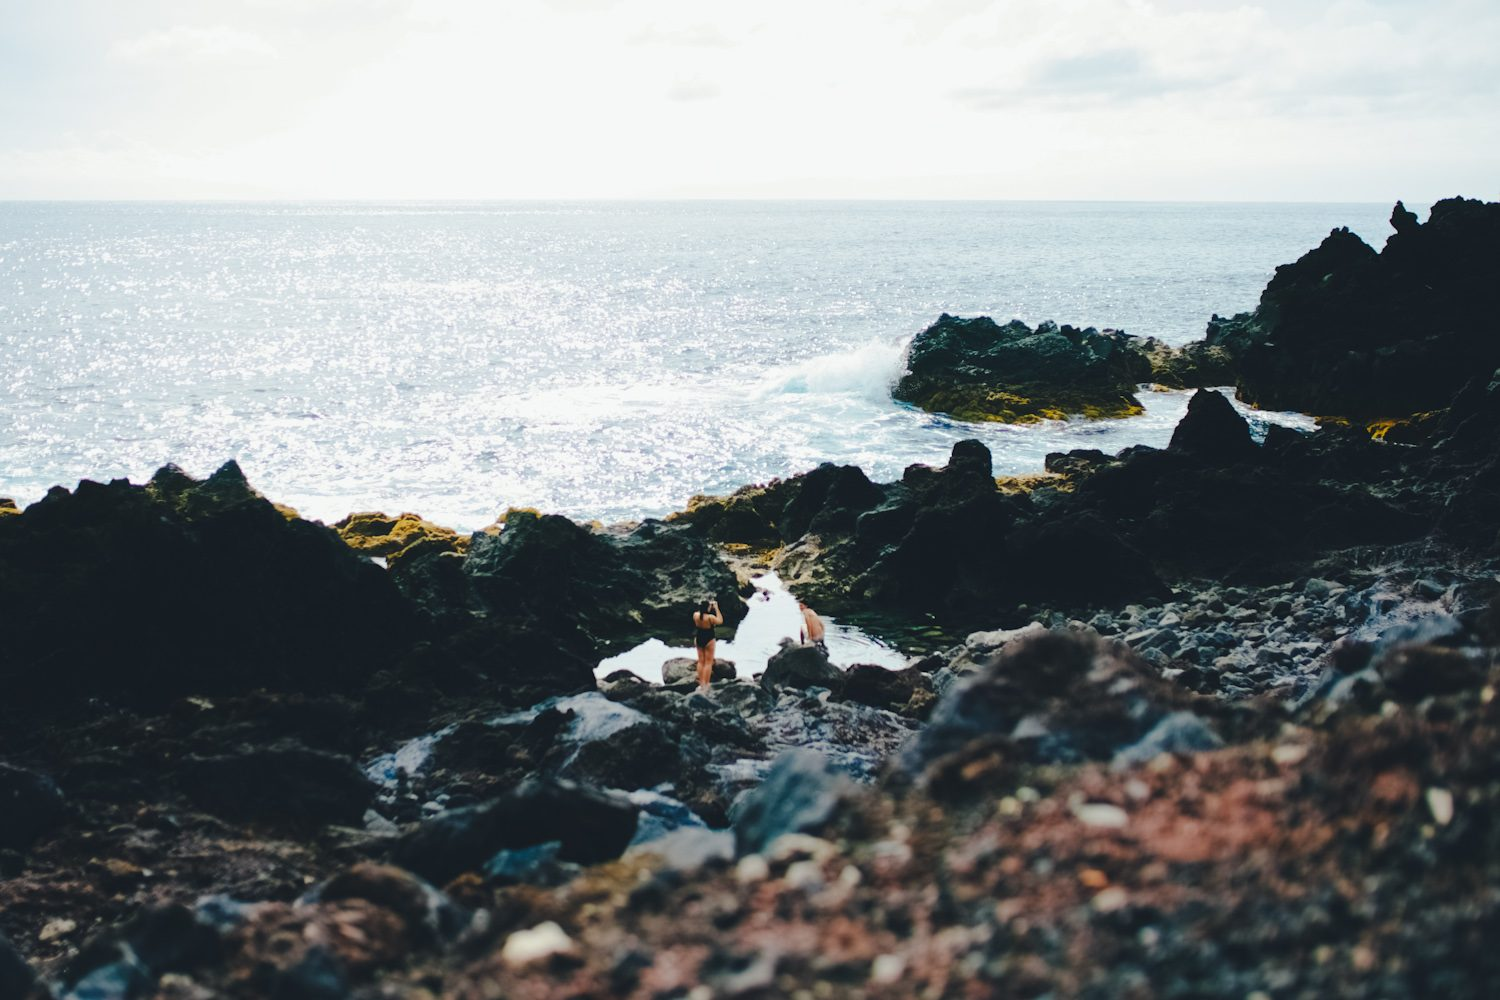 panorama_landscapes_azores_thevoyageur-49